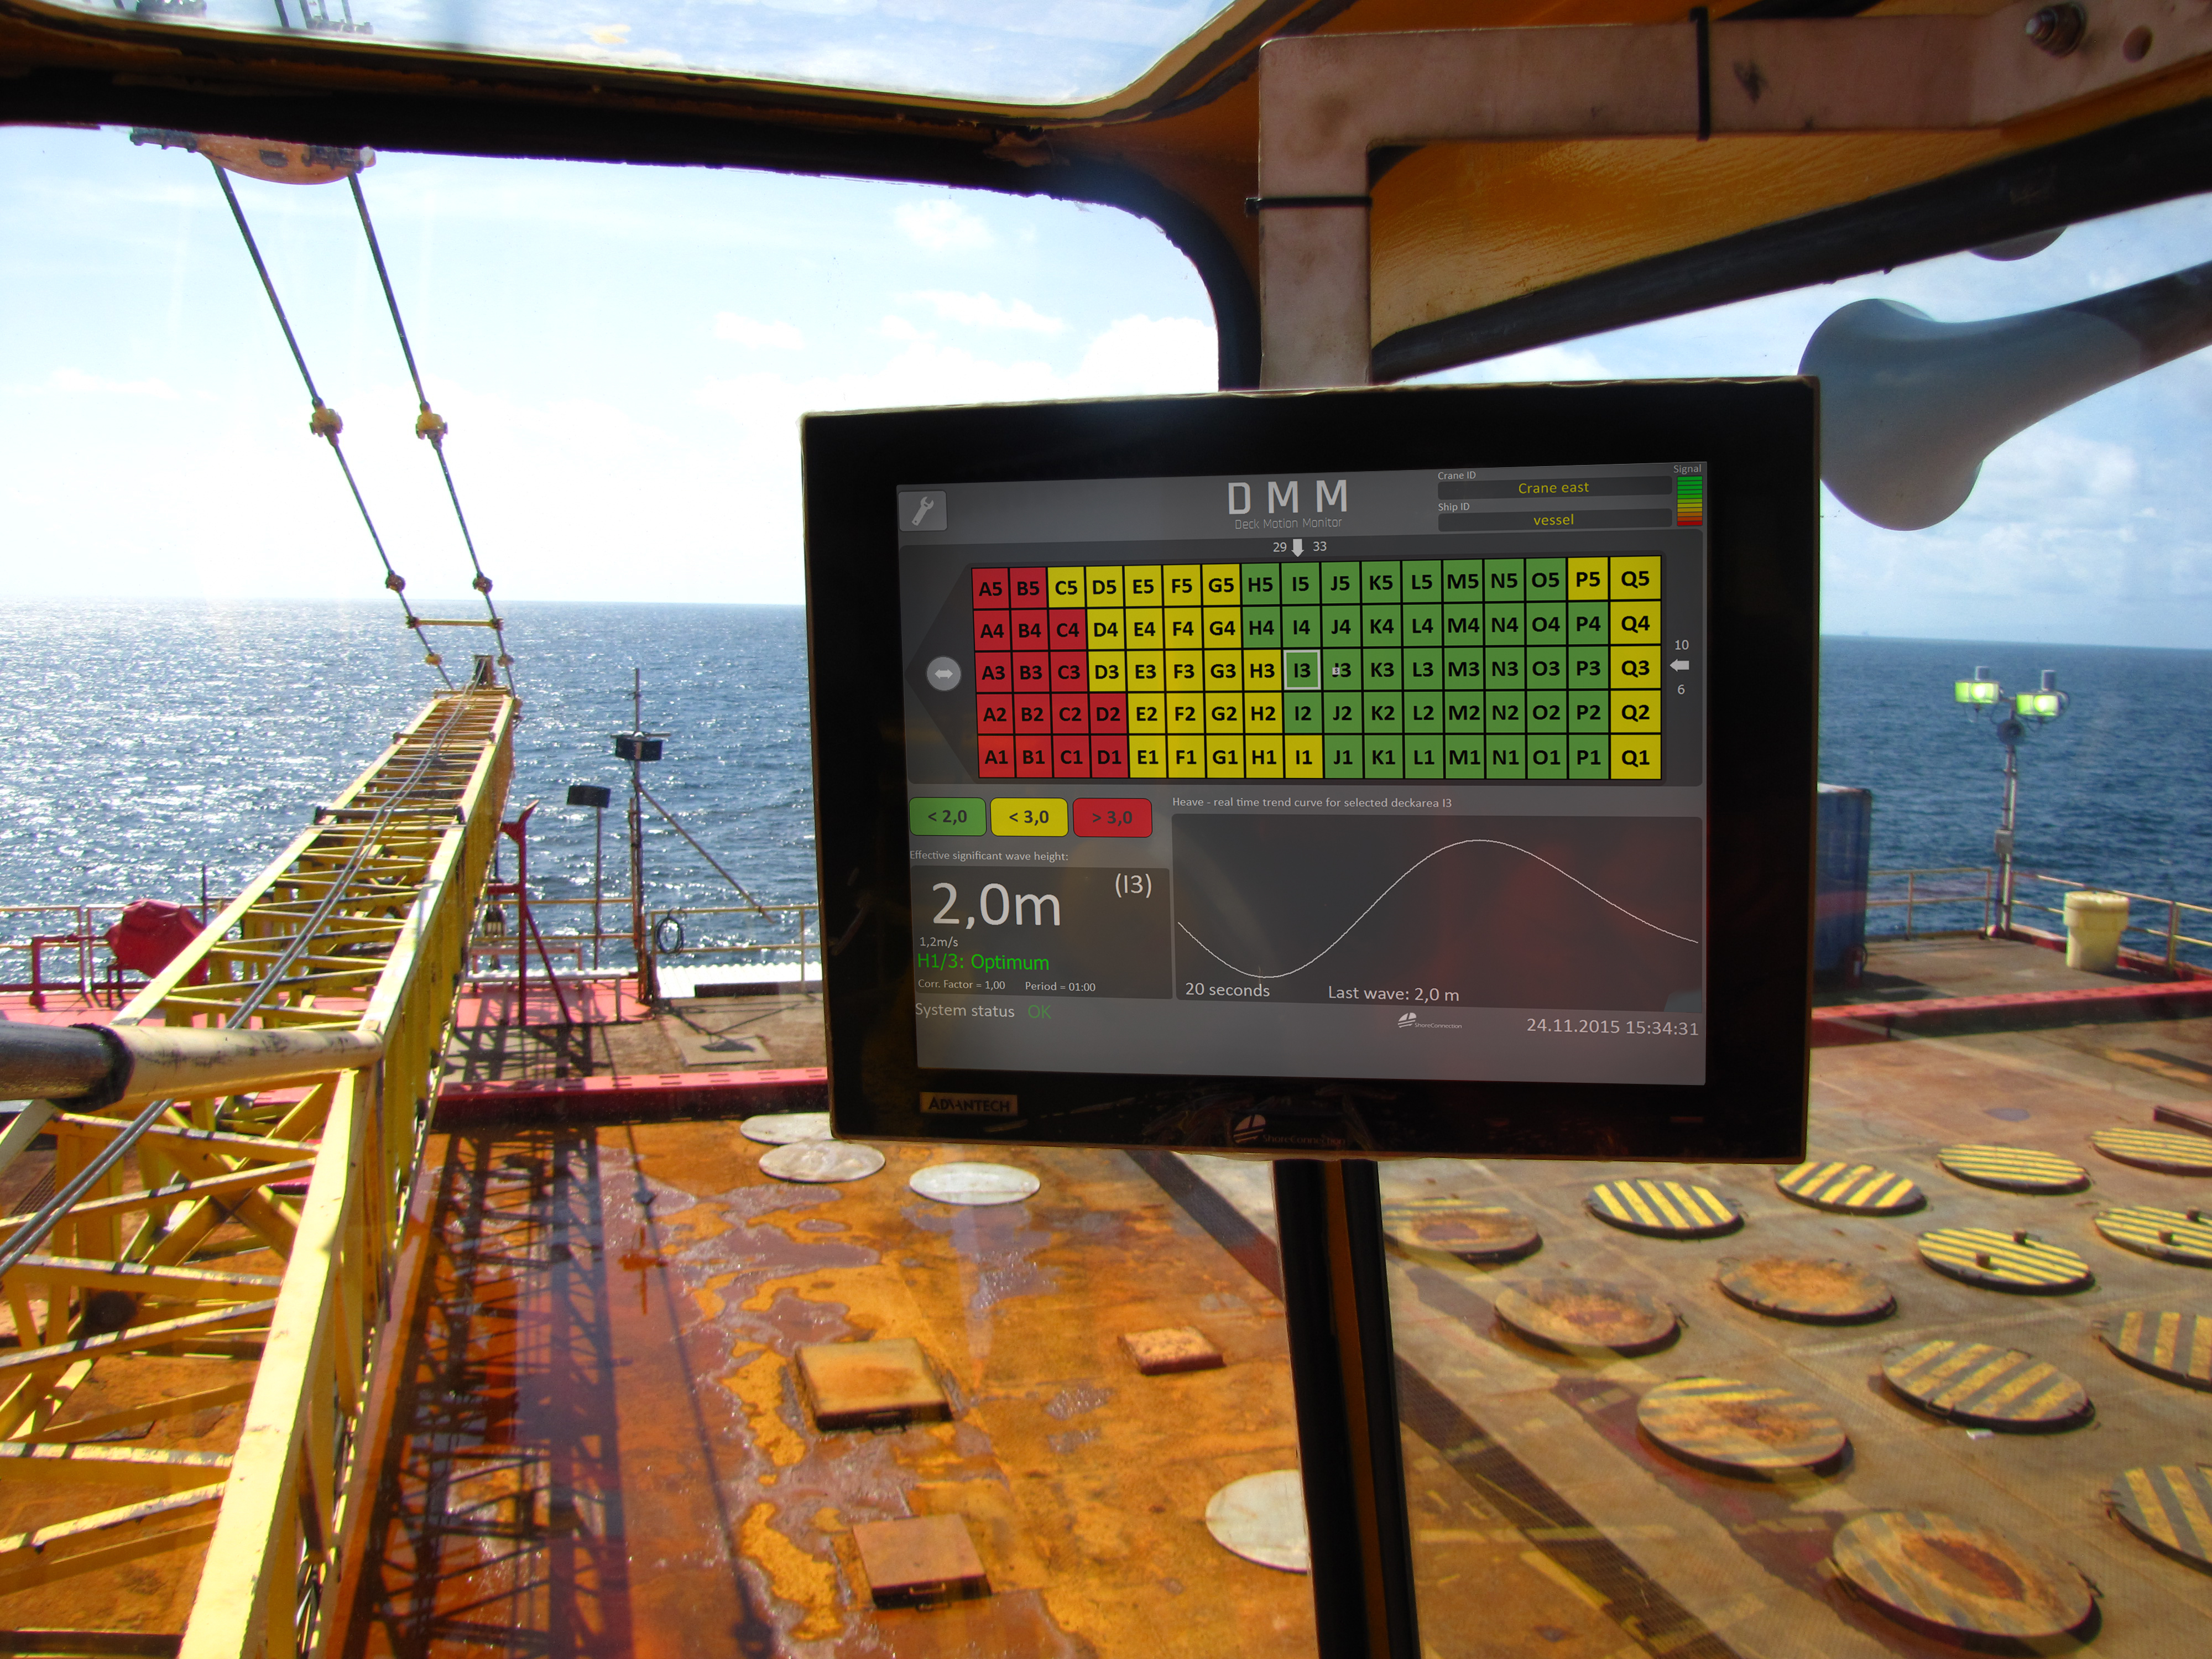 DMM fitted on 4 cranes in Trinidad & Tobago